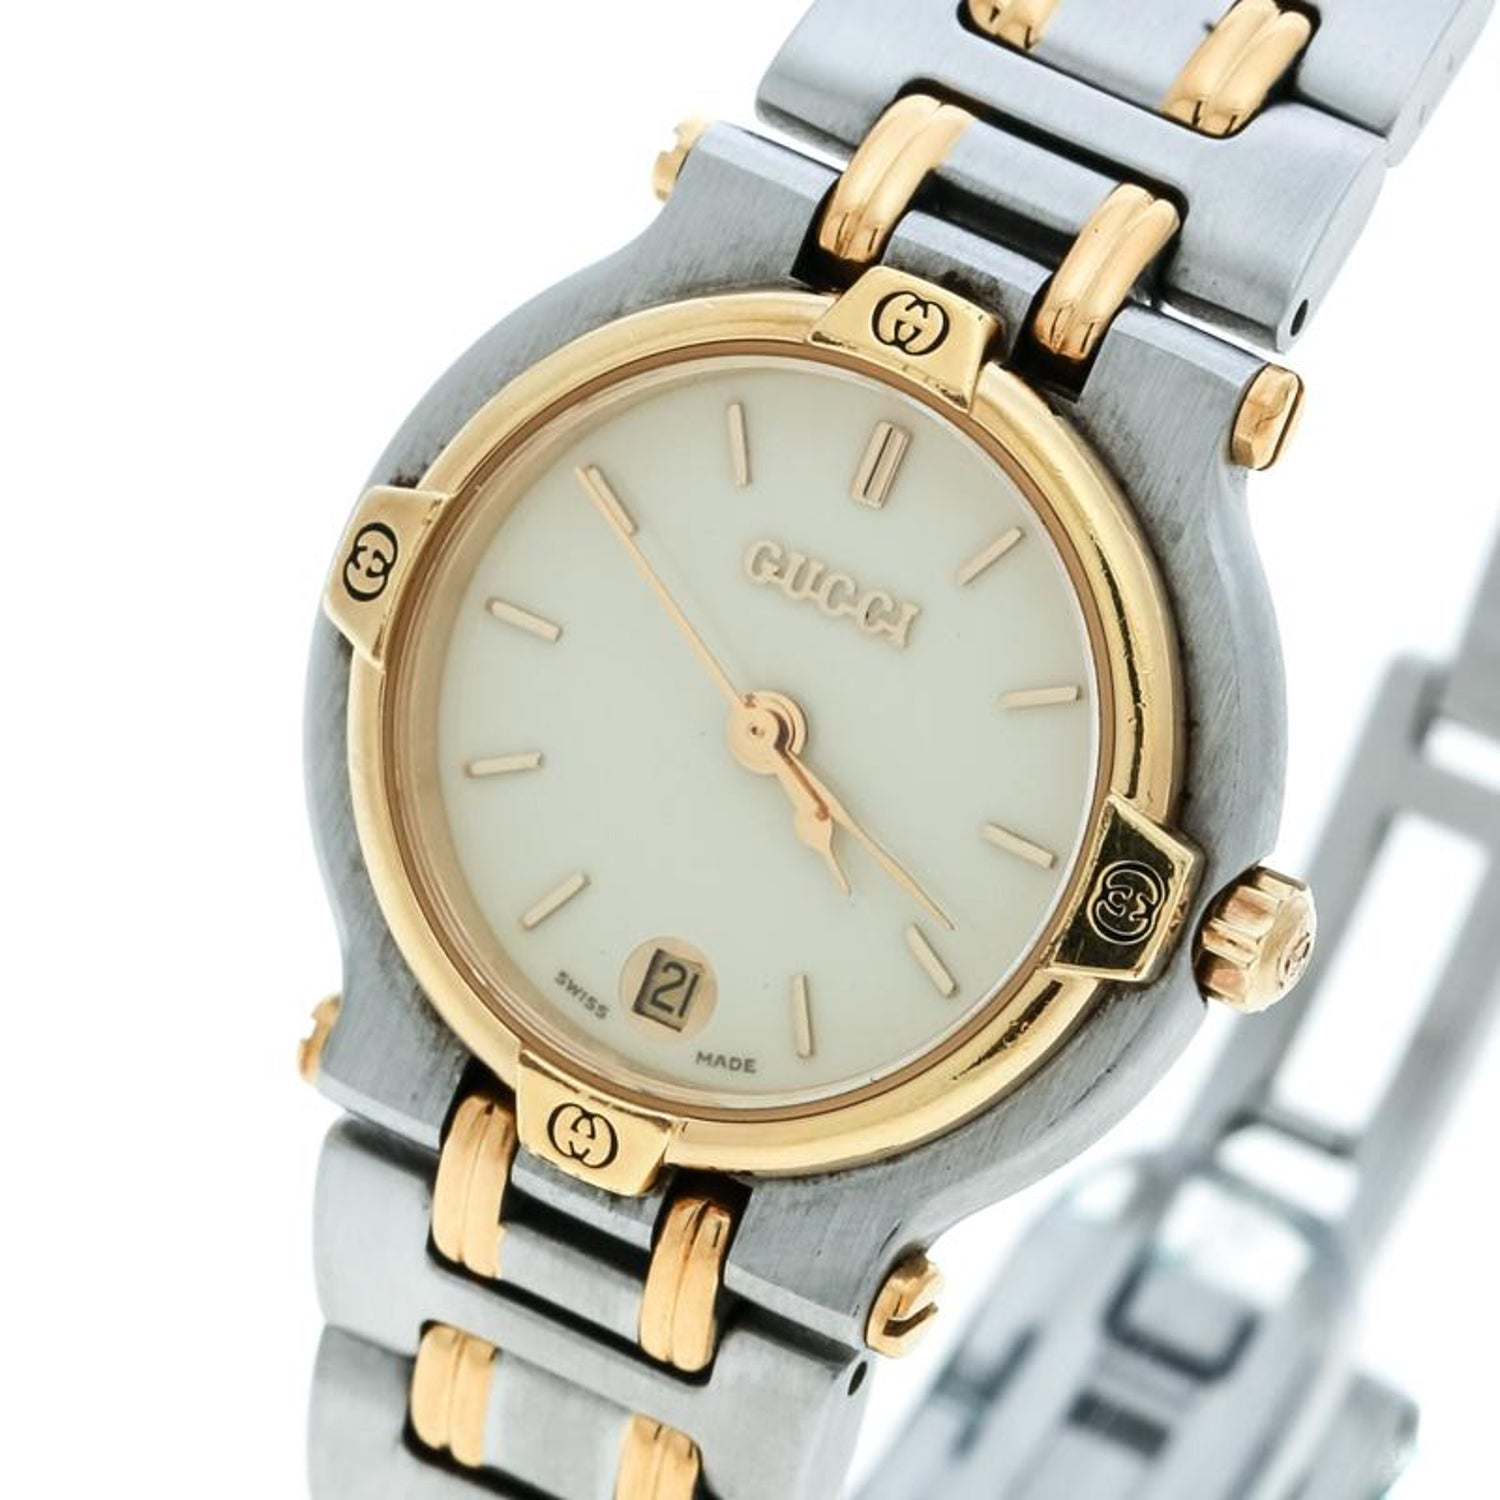 28e1ff2da38 Gucci Cream Two-Tone Stainless Steel 9000L Women s Wristwatch 25 mm For  Sale at 1stdibs